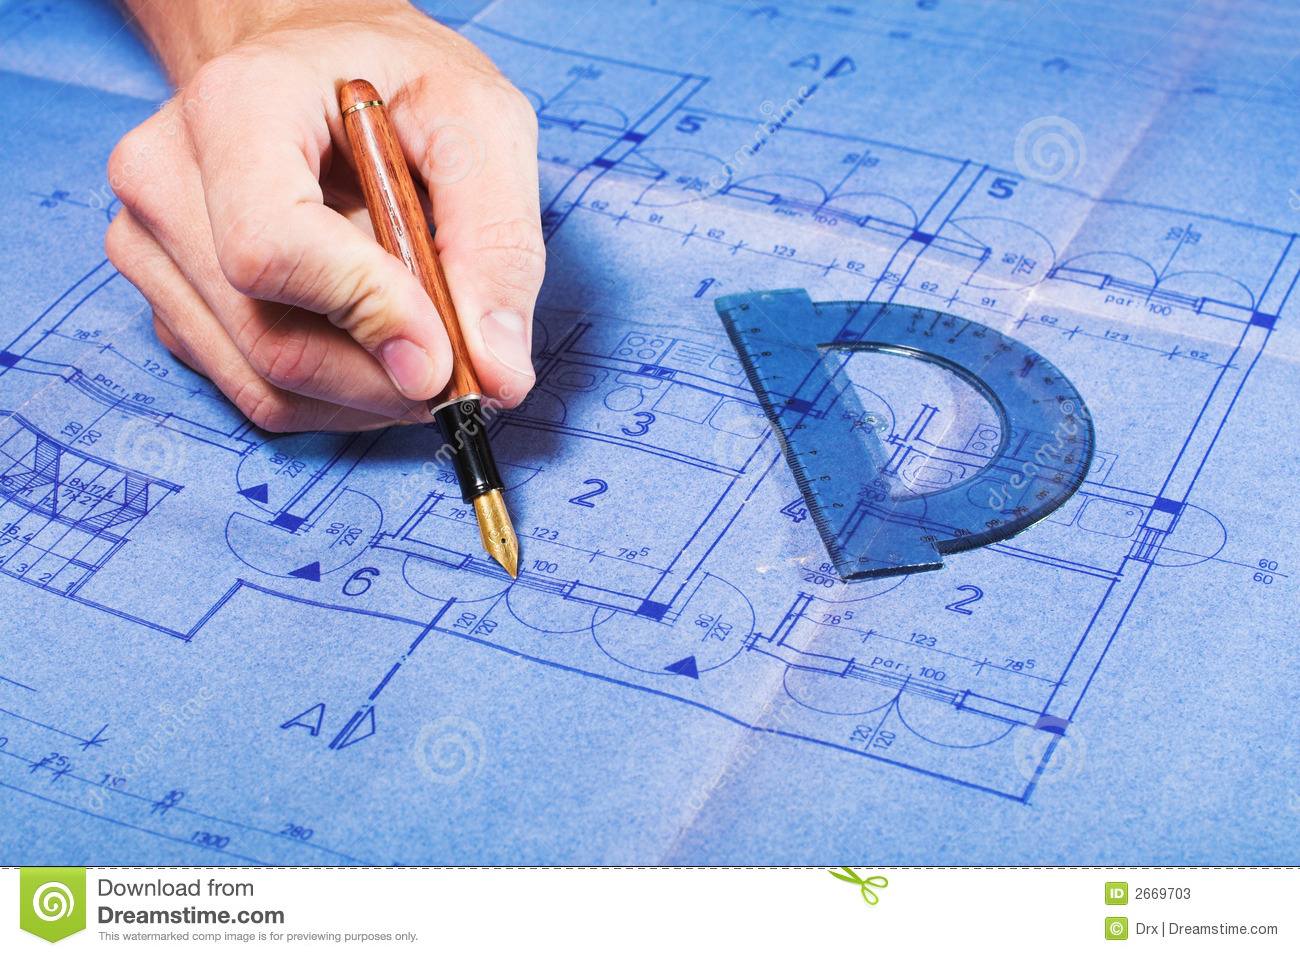 Architecture blueprint drawing stock photos image 2669703 for How to draw blueprints online